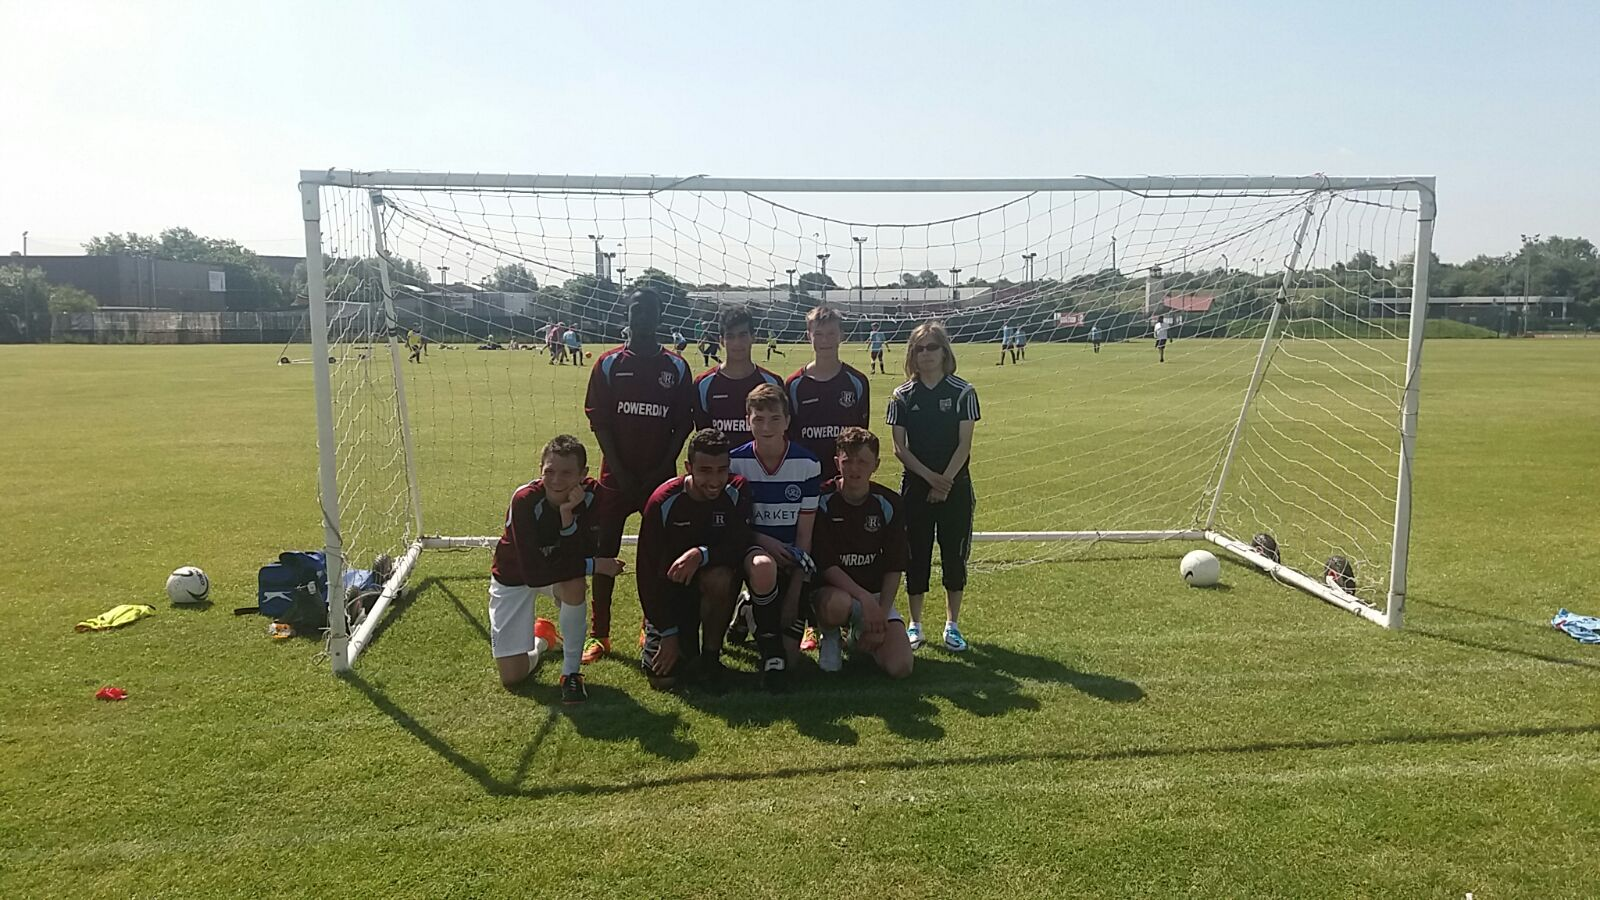 Our Disability team played their first-ever game today versus St Albans Deaf